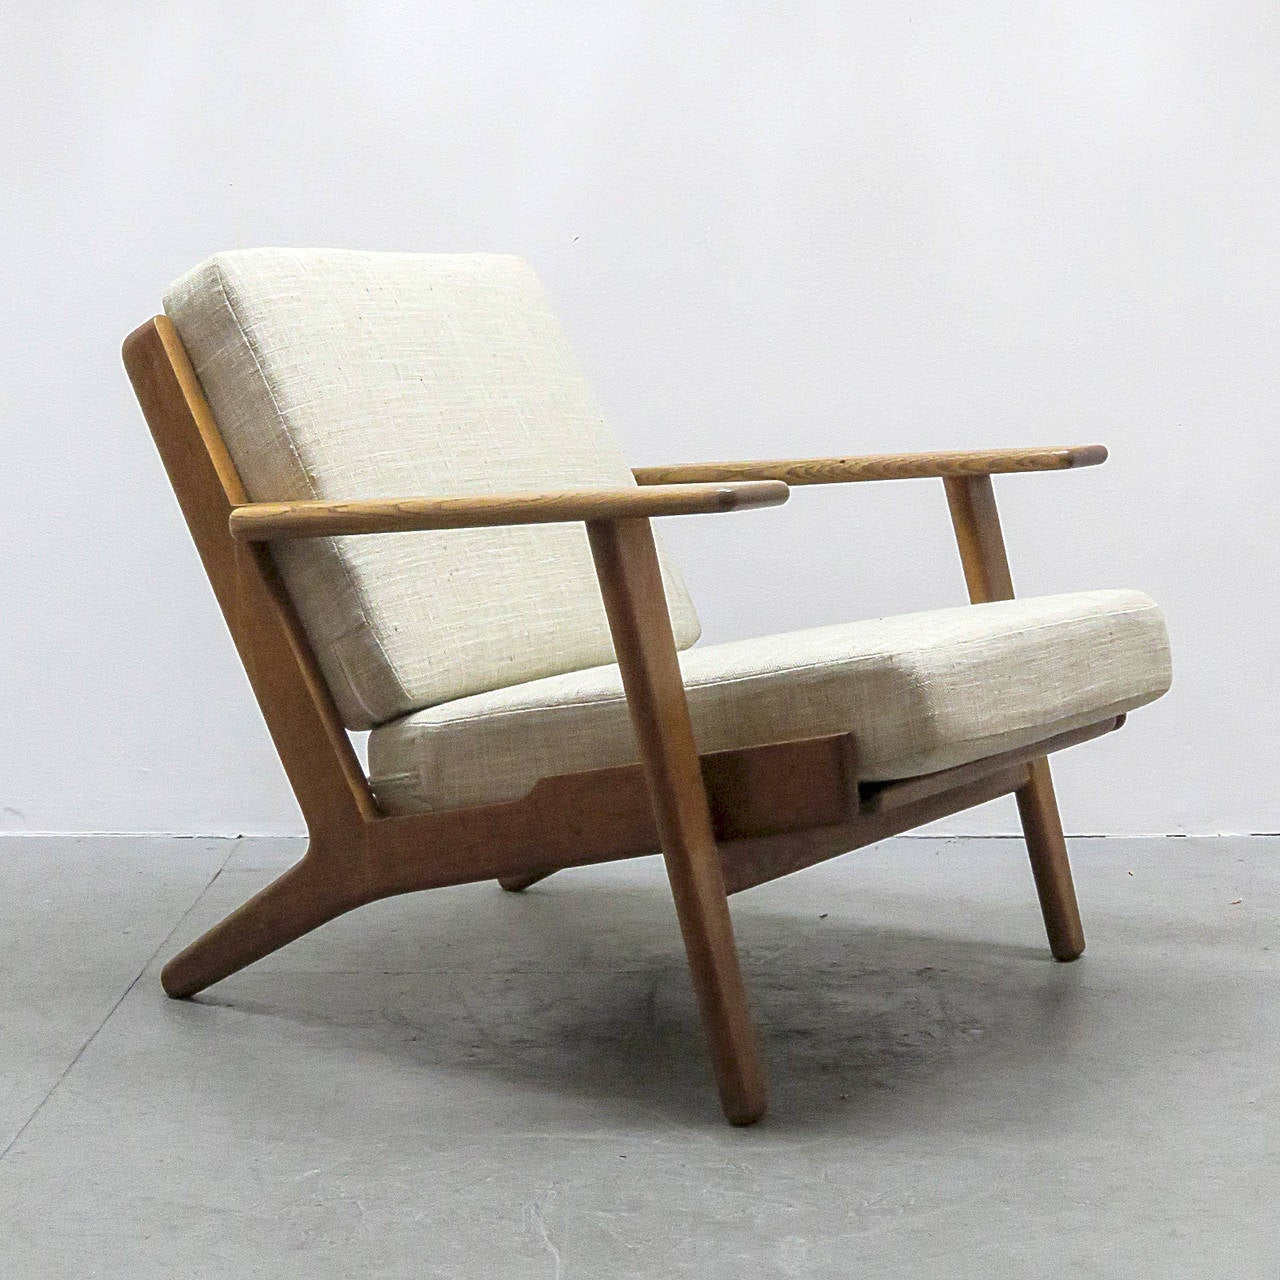 Hans J. Wegner GE 290 Lounge Chair 2